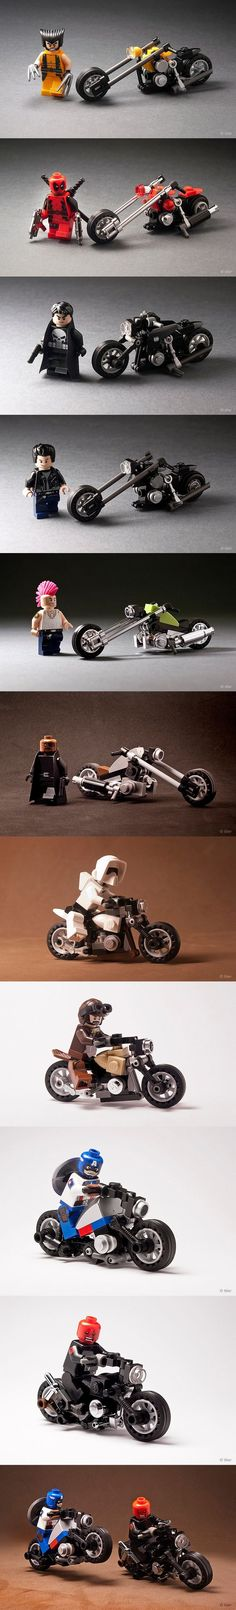 hahahahahah! AMAZING LEGO Bikes with wolverine, deadpool,ghost rider ....